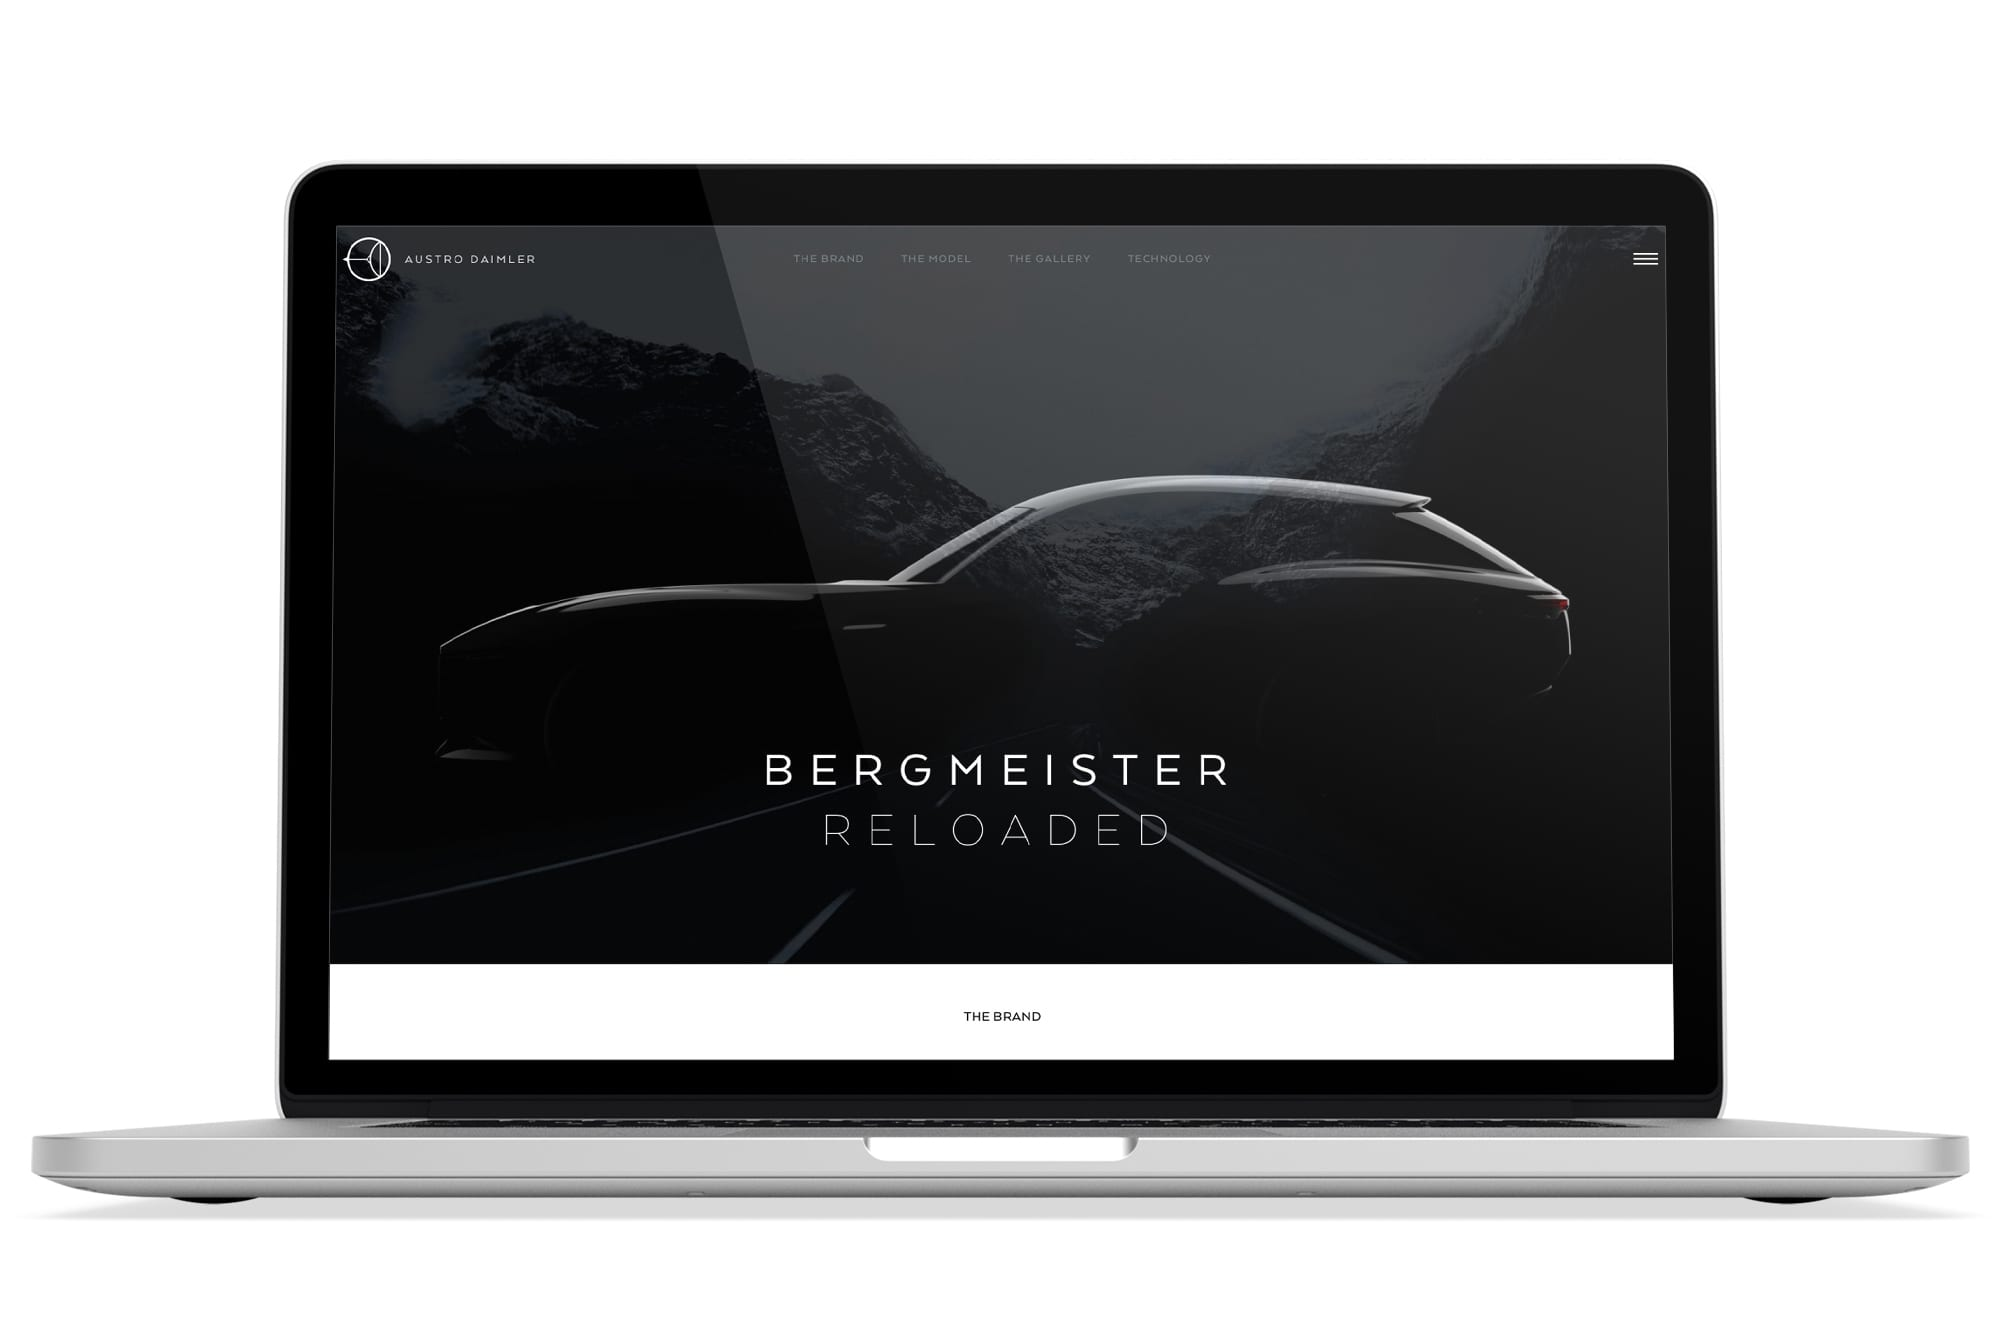 Webdesign Beispiel: Logodesign, Responsive Webdesign, WordPress für Automotive & Technologie